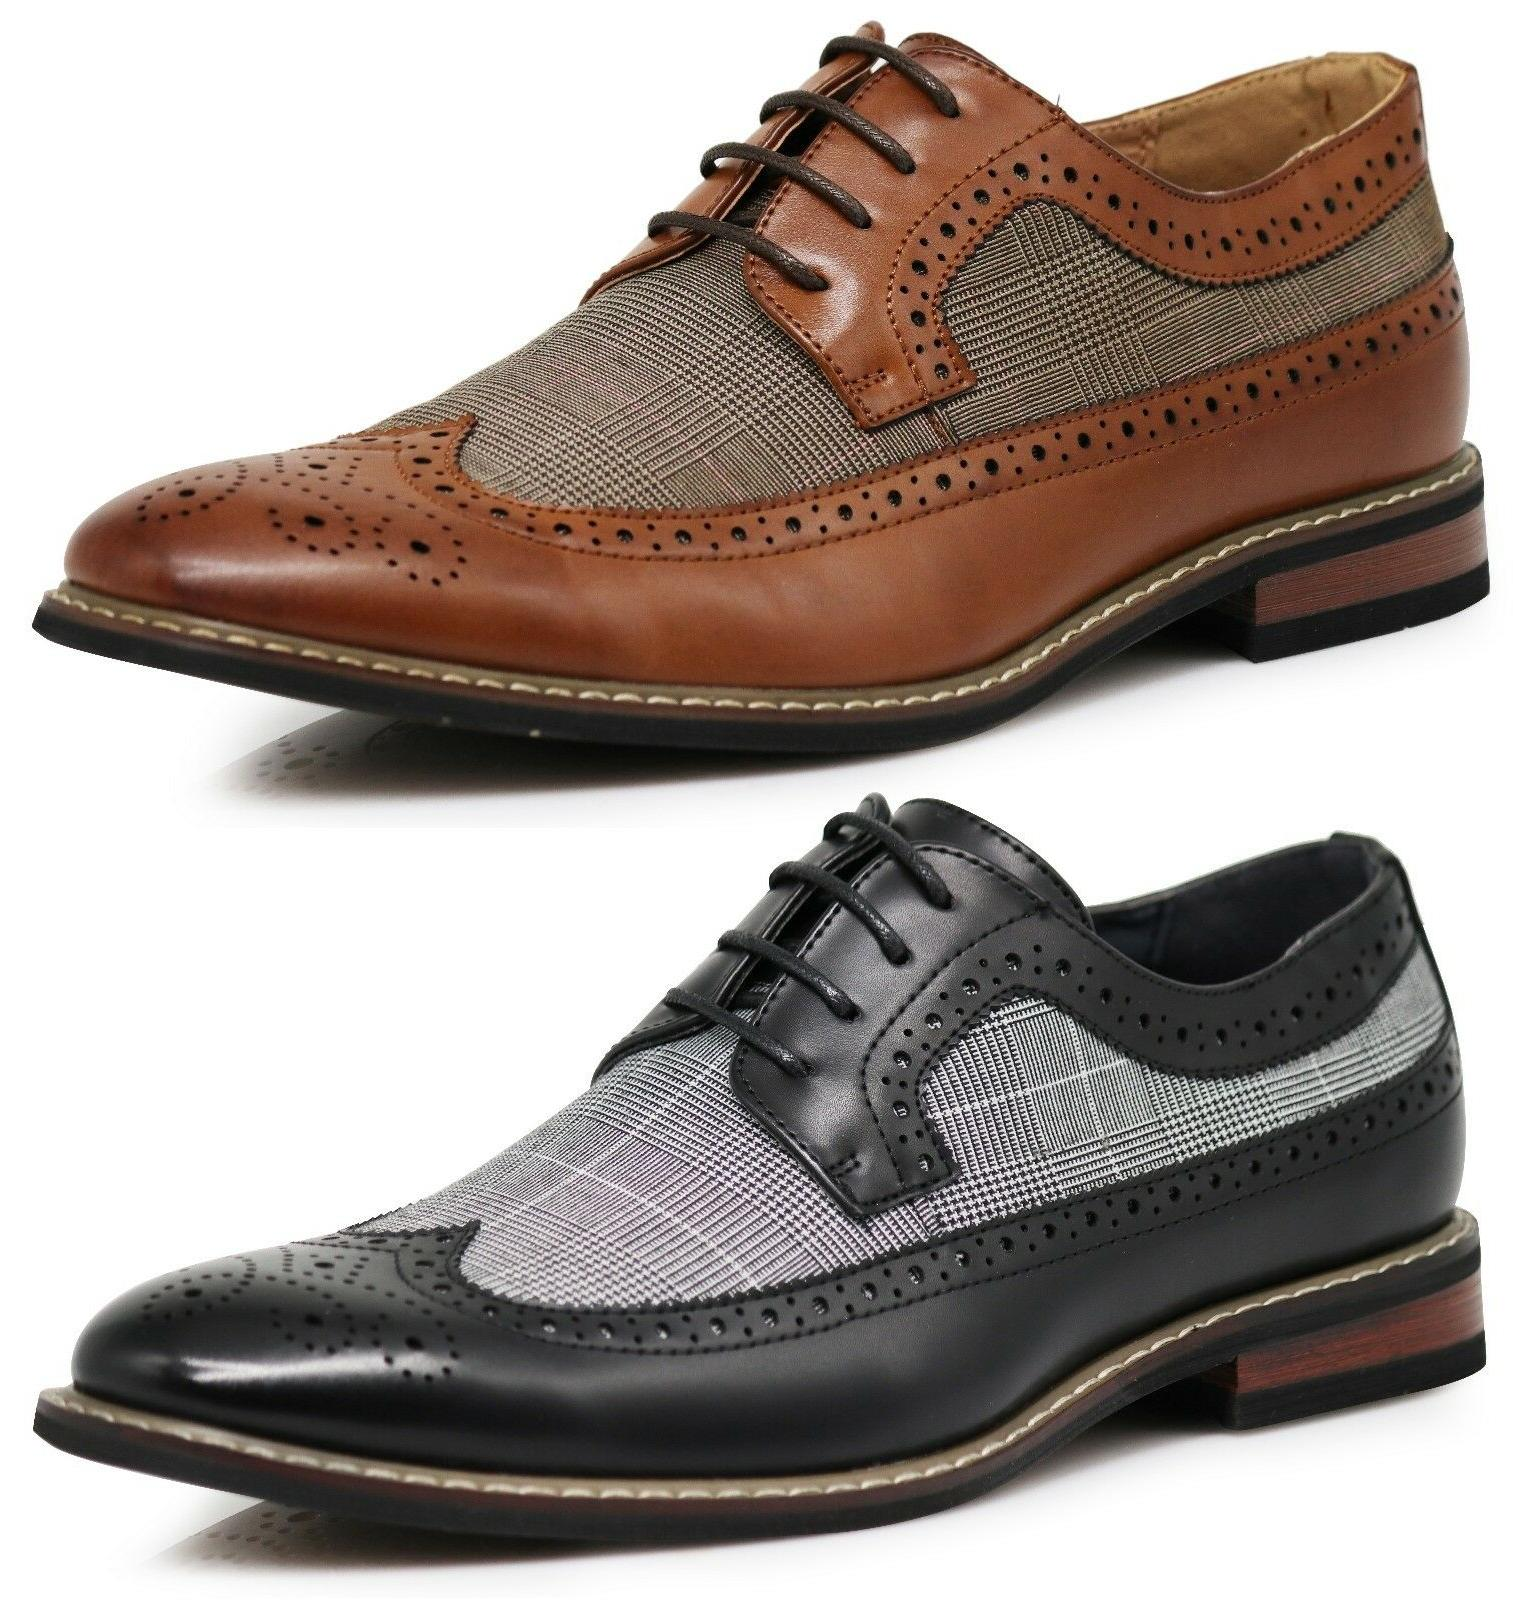 Men Dress Shoes WingTip Oxford Leather Lined Lace Up Black B